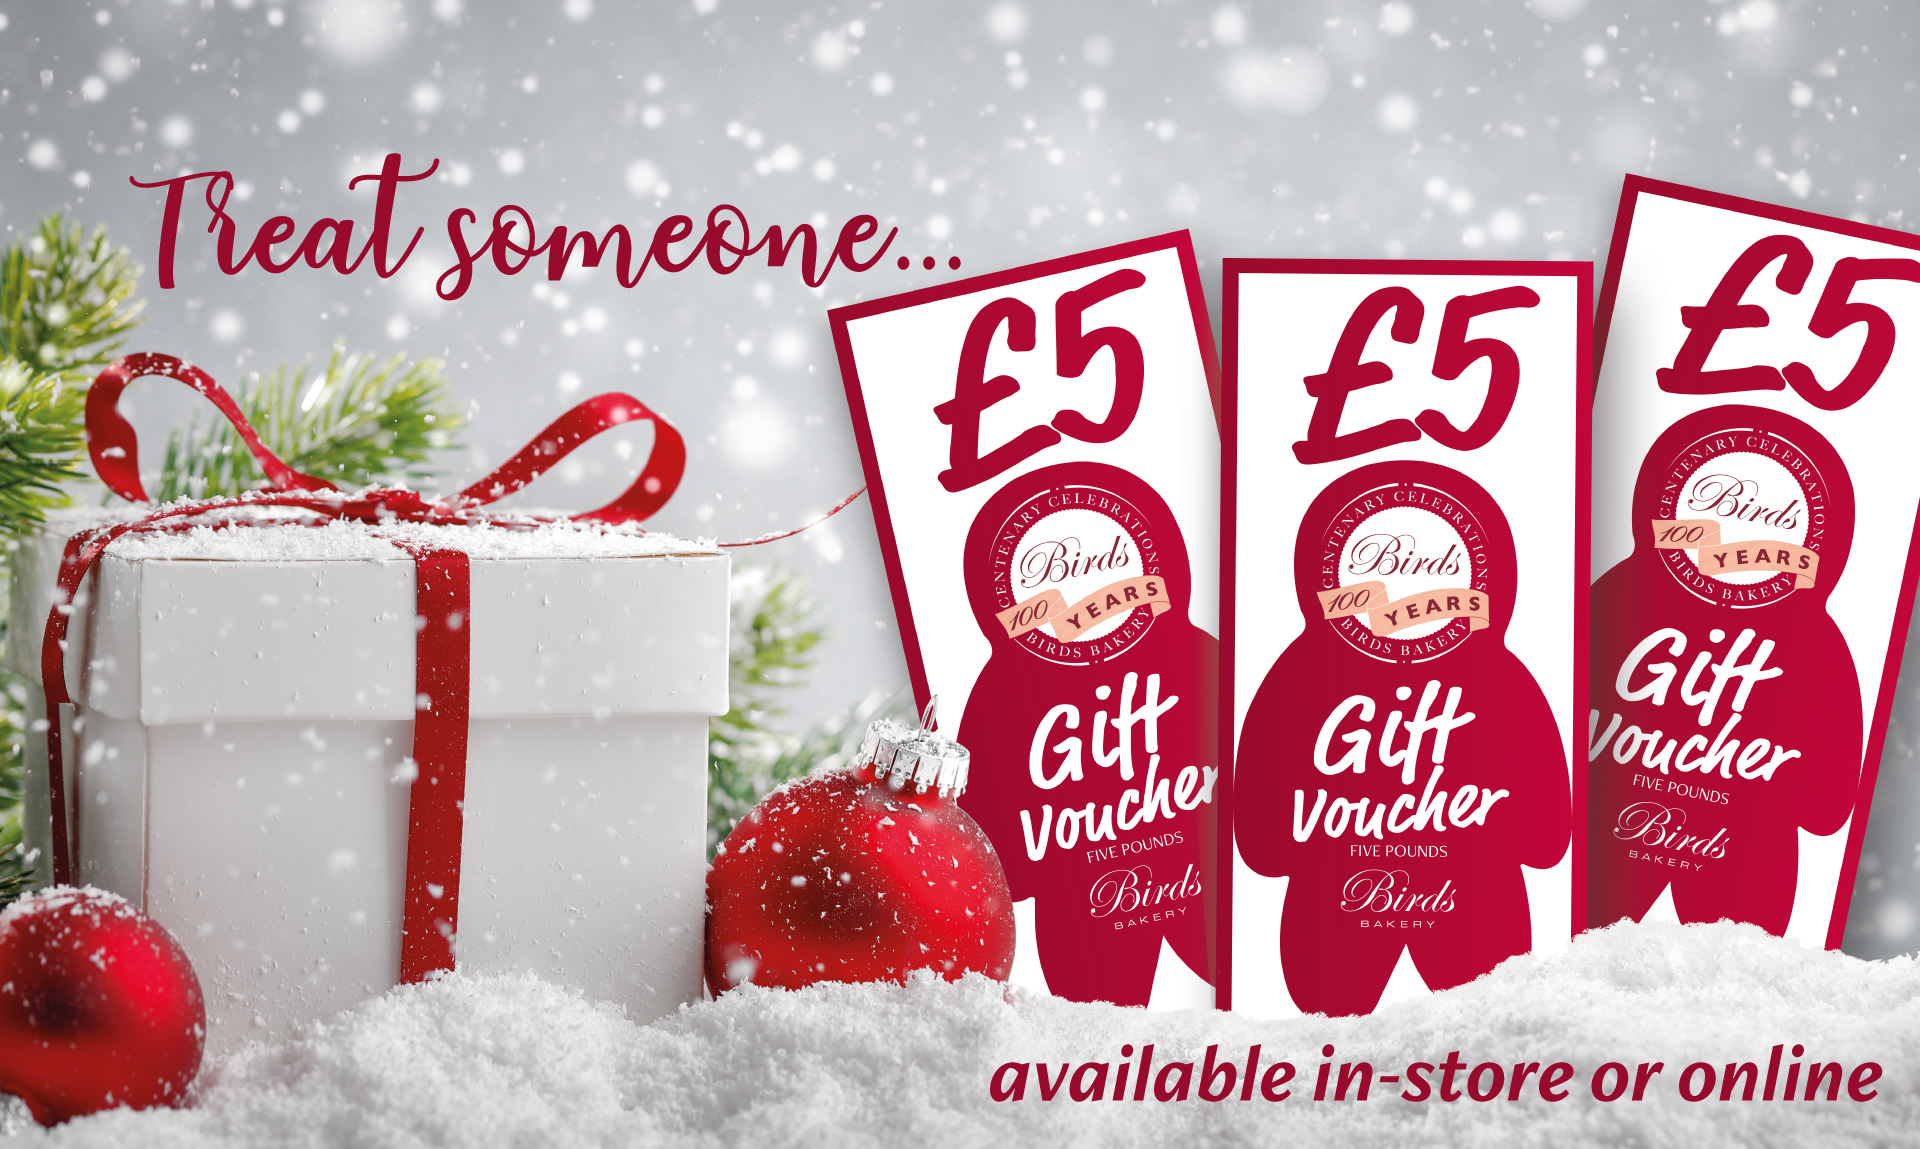 Treat someone, gift vouchers available in store or online